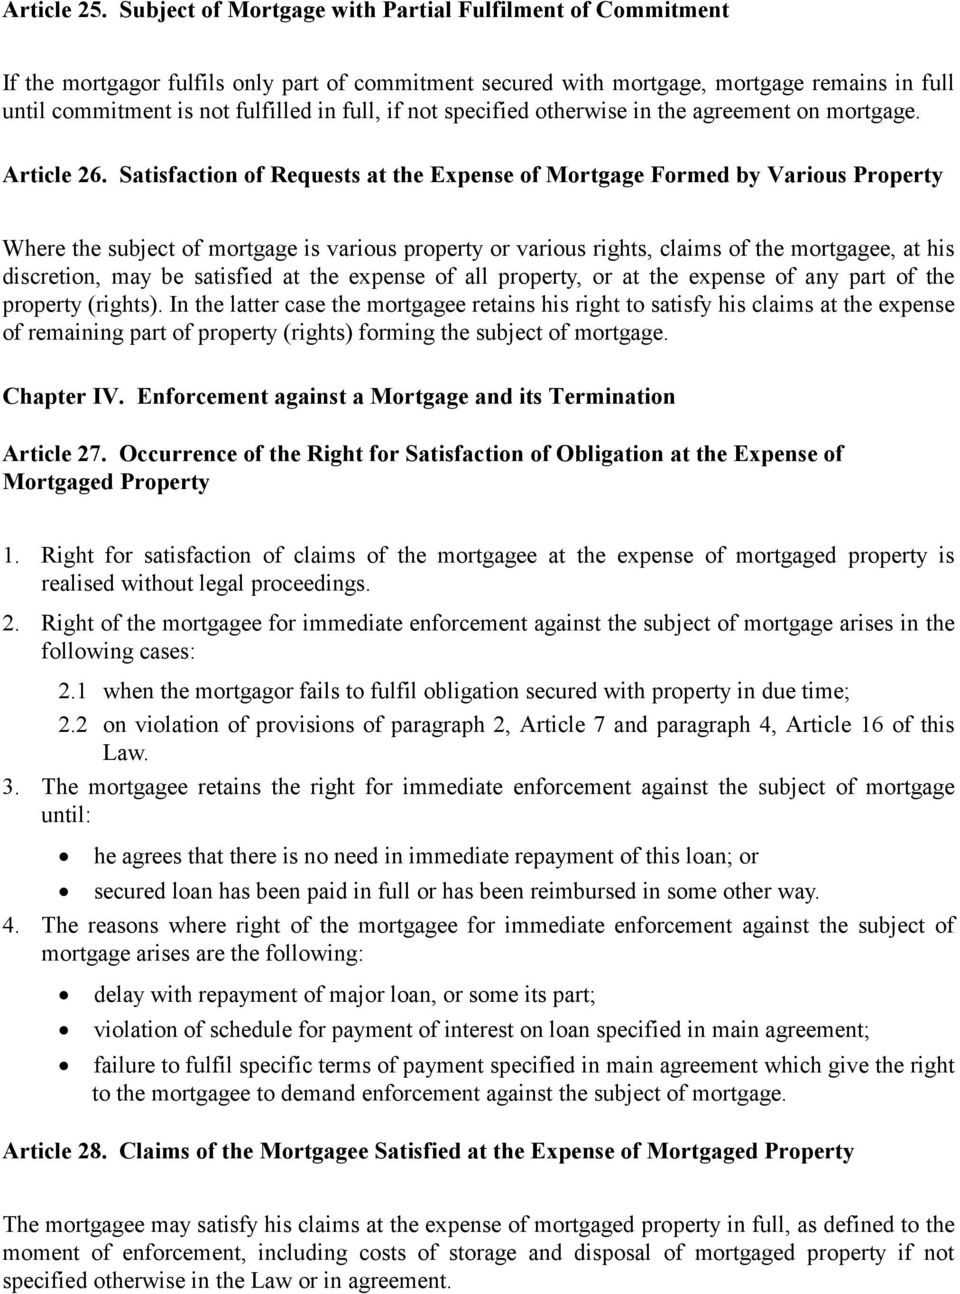 if not specified otherwise in the agreement on mortgage. Article 26.